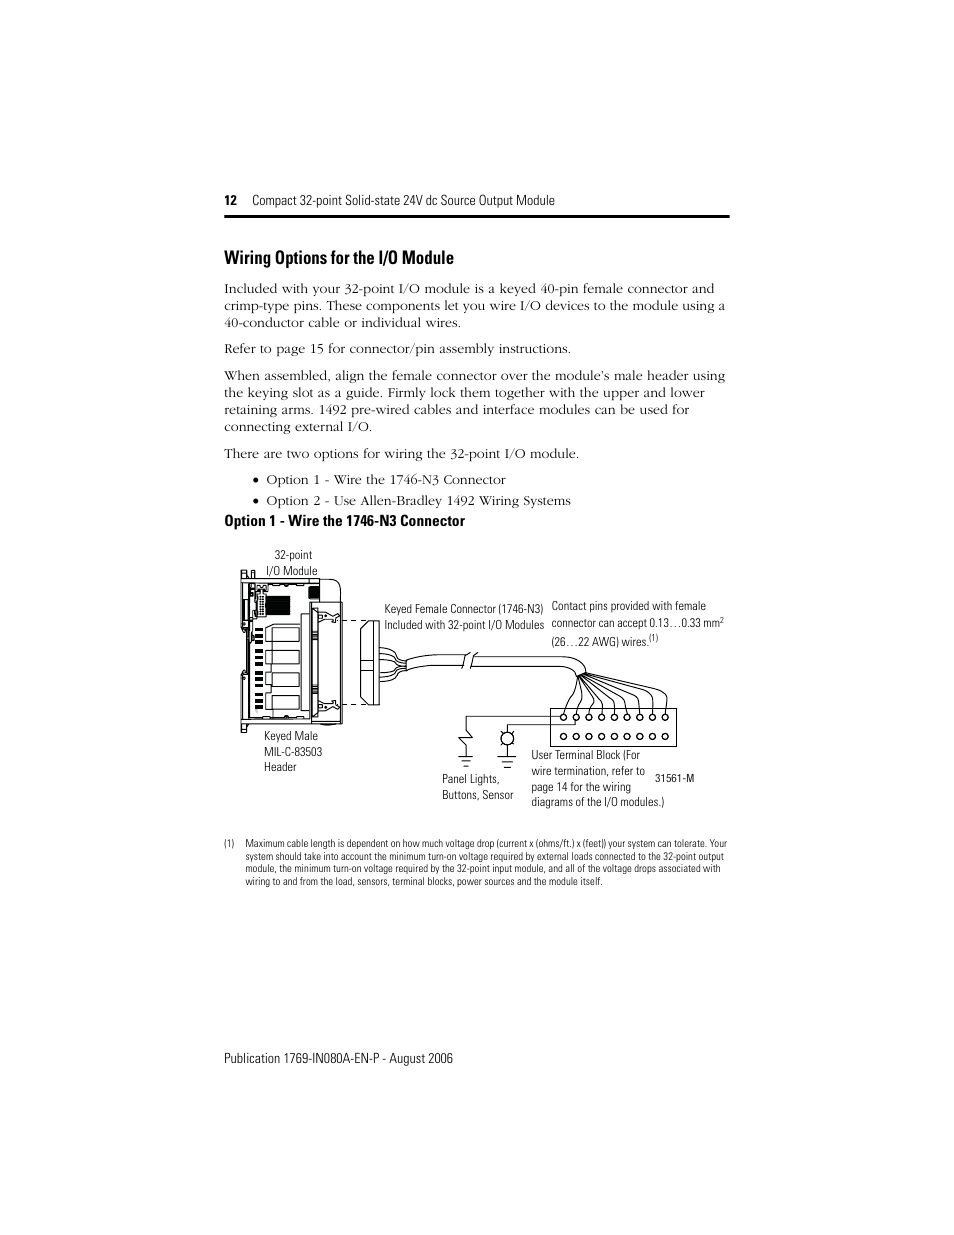 hight resolution of wiring options for the i o module rockwell automation 1769 ob32t compact 32 point solid state 24v dc source output module user manual page 12 24